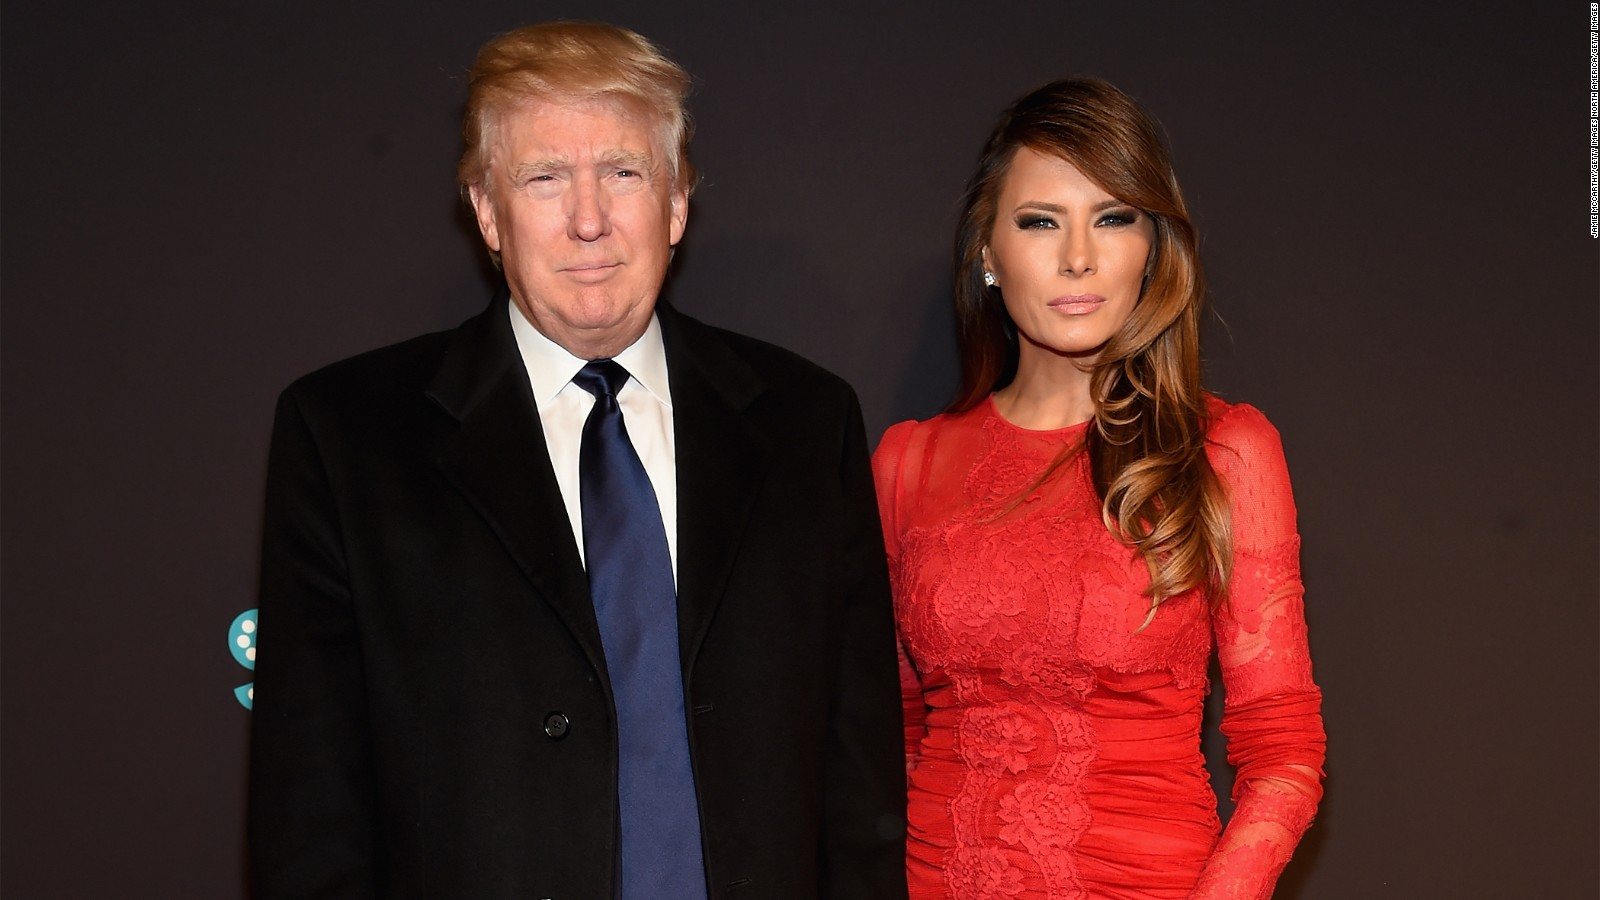 Image result for melania an donald looking mad